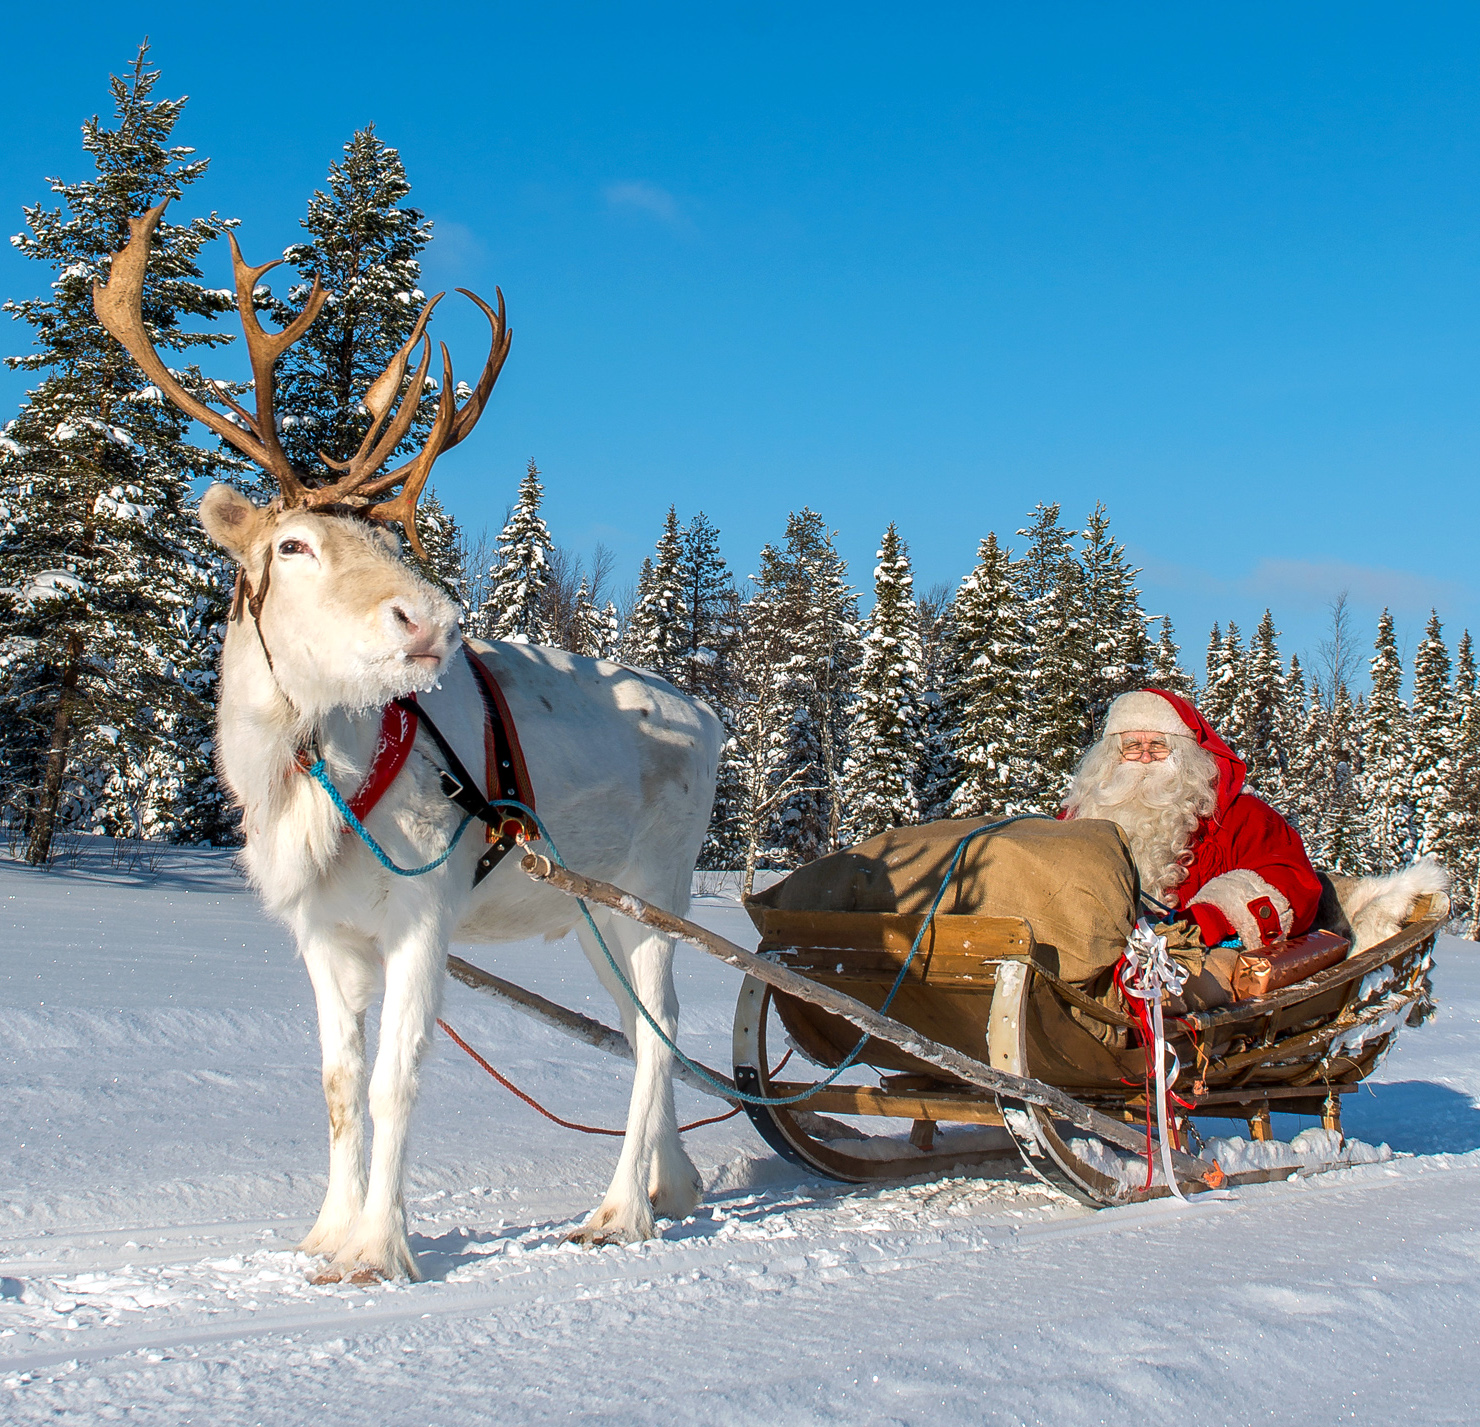 Santa Claus' reindeer sleigh ride at Ritavaara in Pello in Lapland ...